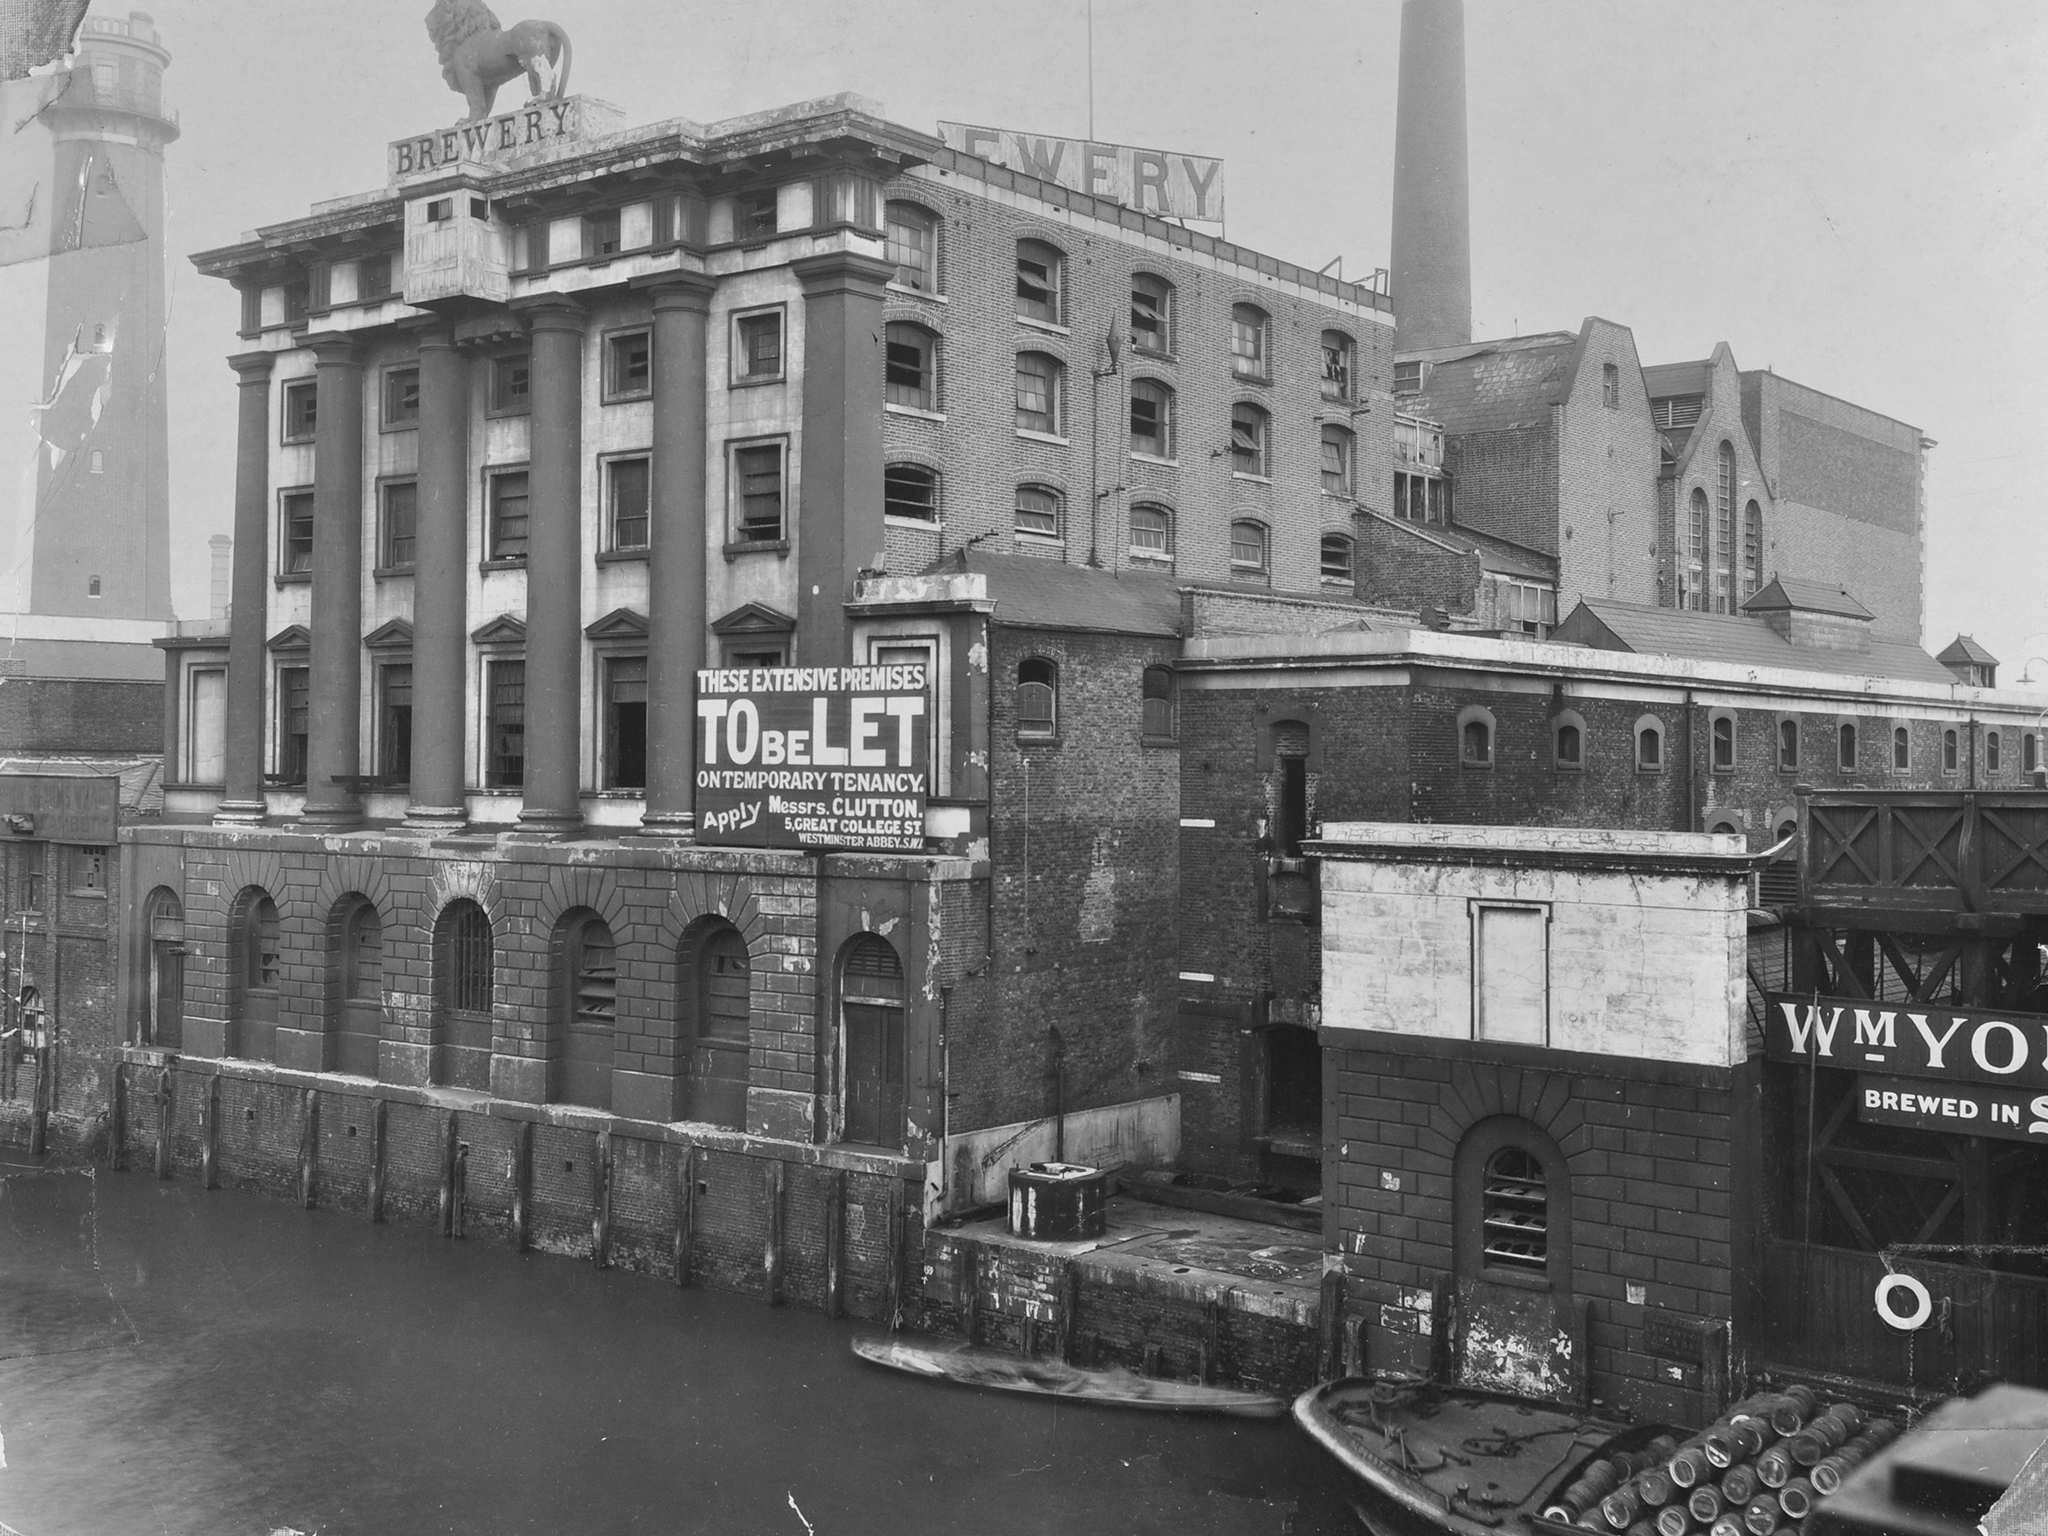 Lost London: The Lion Brewery